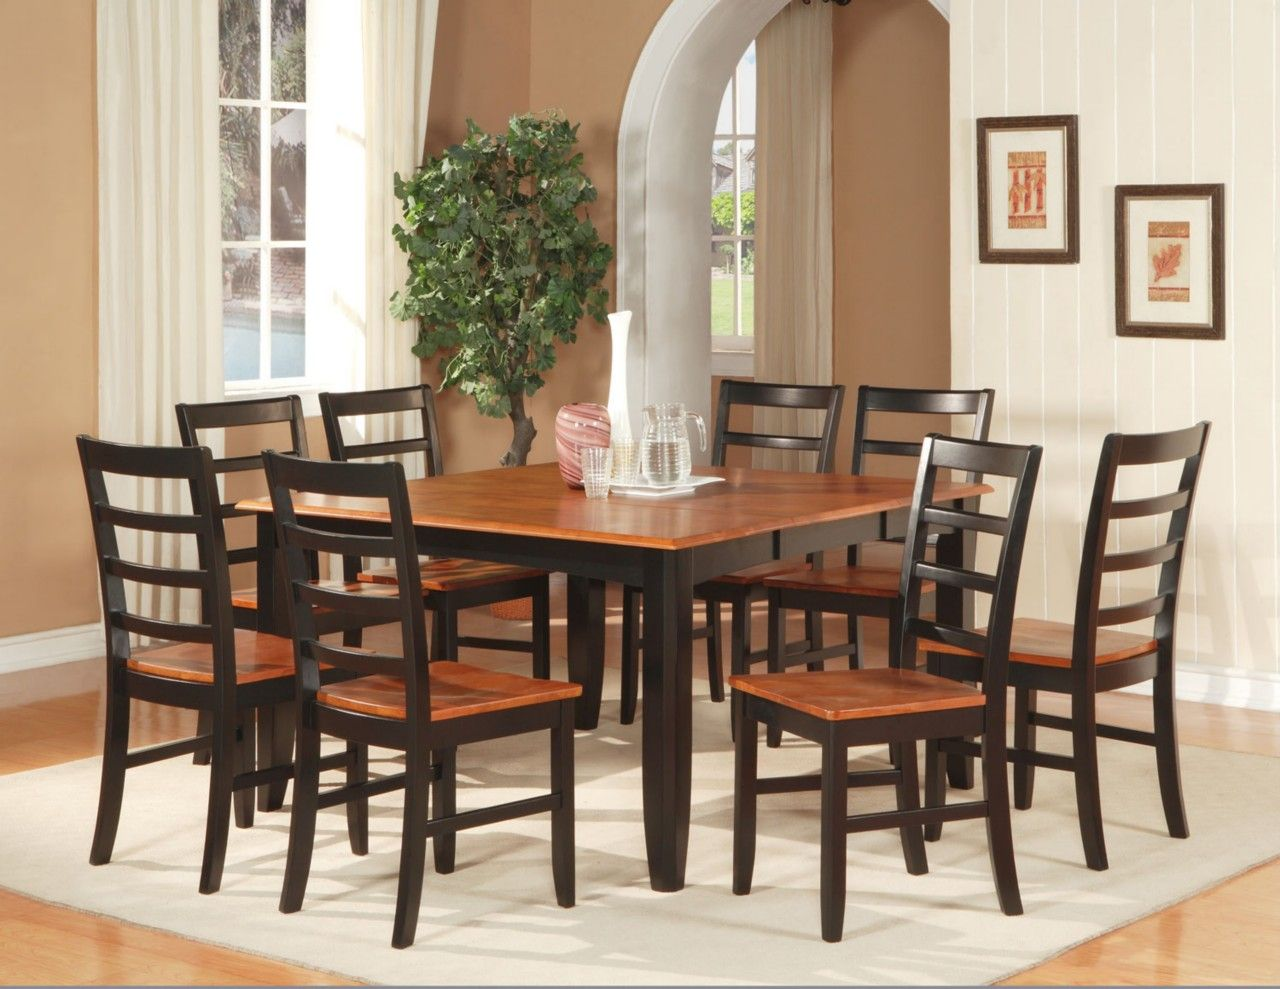 Furniture Dining Room Chairs House Construction Planset of dining room